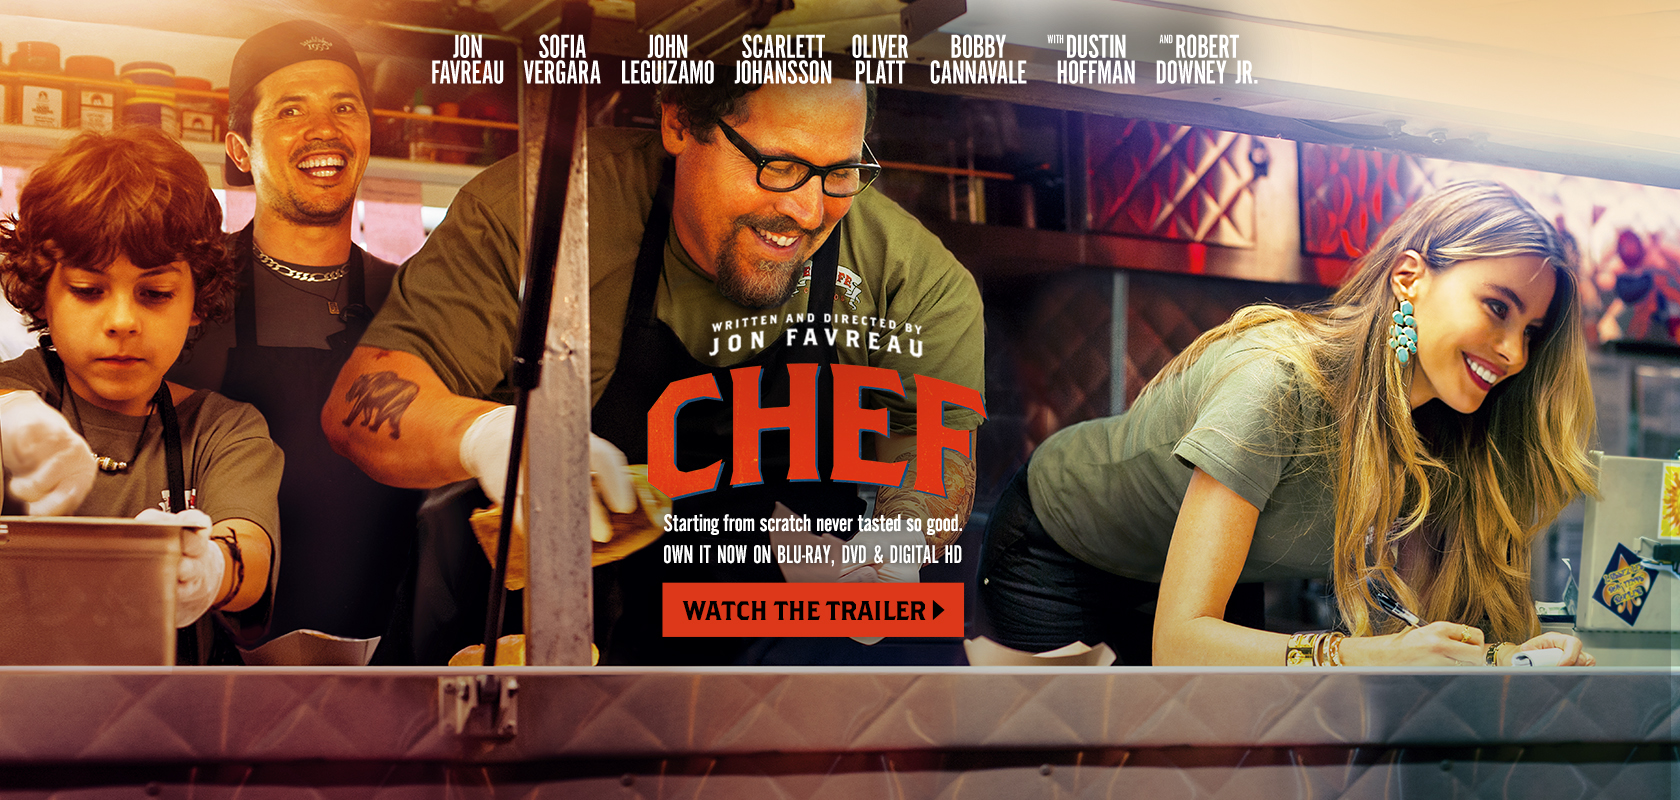 Chef movie banner royalty free library ChefMovie banner royalty free library